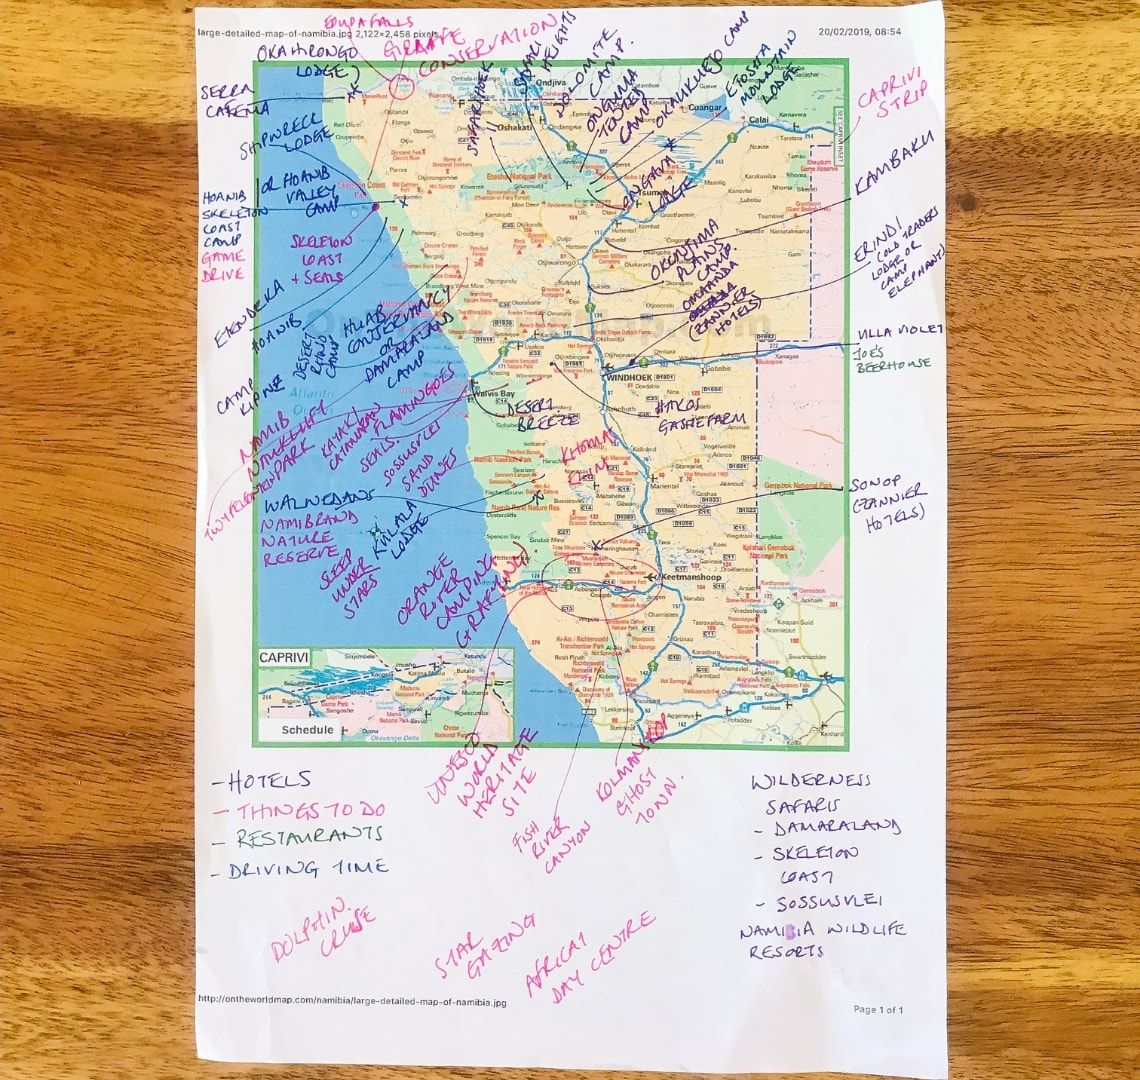 Namibia reading - a map of Namibia annotated in colour coded segments